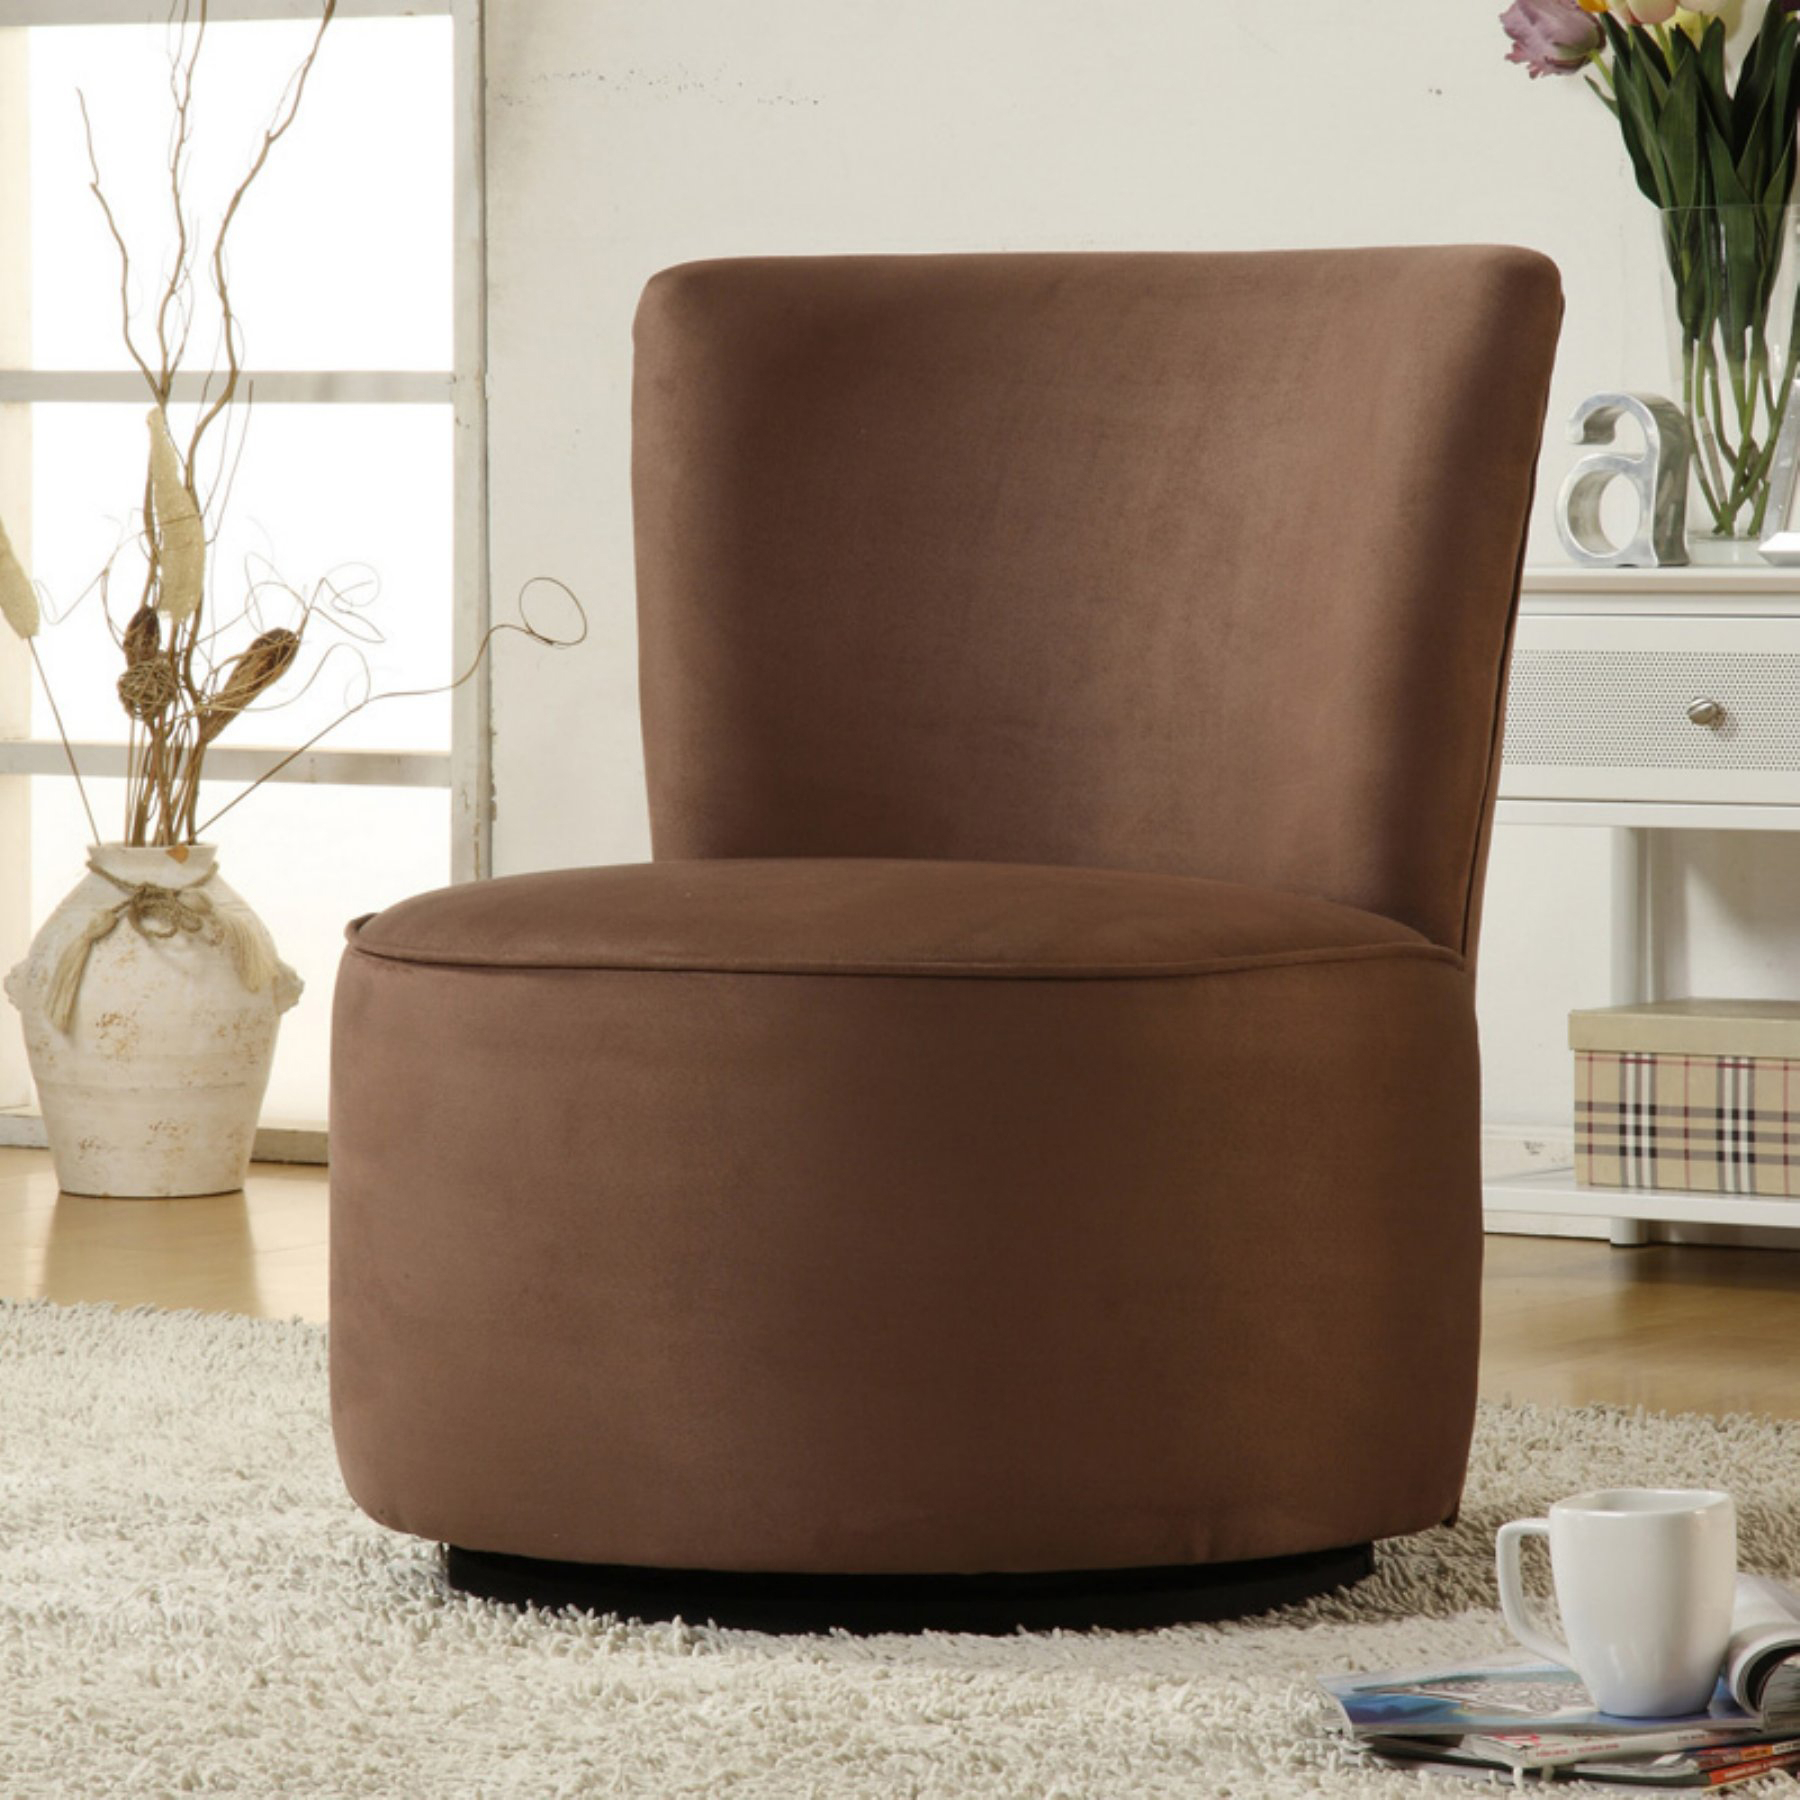 Aiden Round Fabric Swivel Chair Brown – Walmart Pertaining To Aidan Ii Swivel Accent Chairs (View 13 of 25)